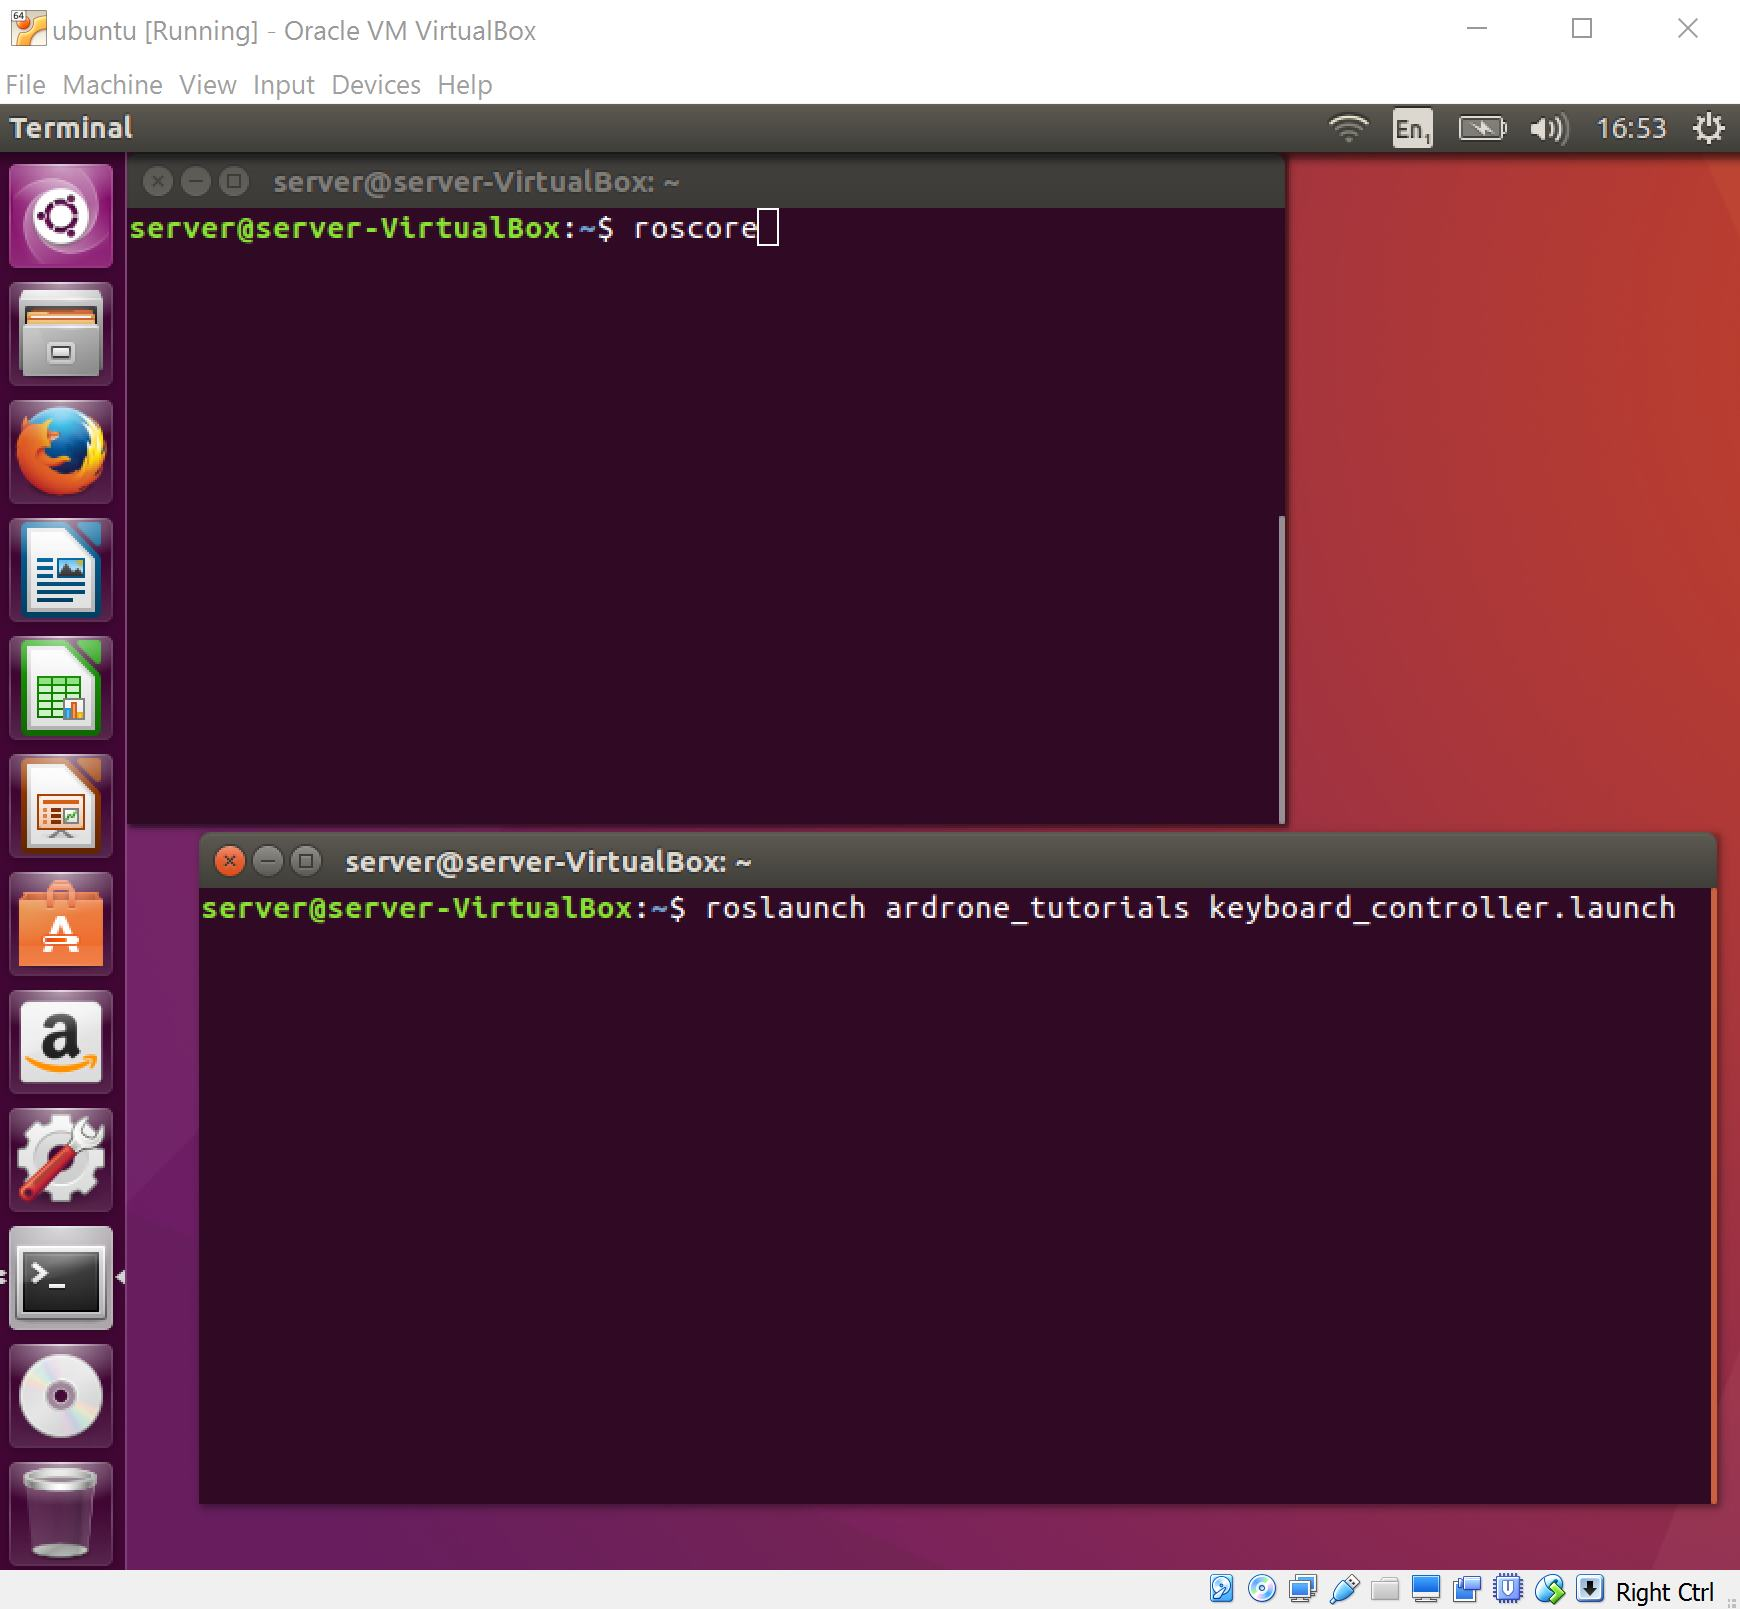 Getting started with Ardone 2, Ubuntu, VirtualBox and ROS (Part 3